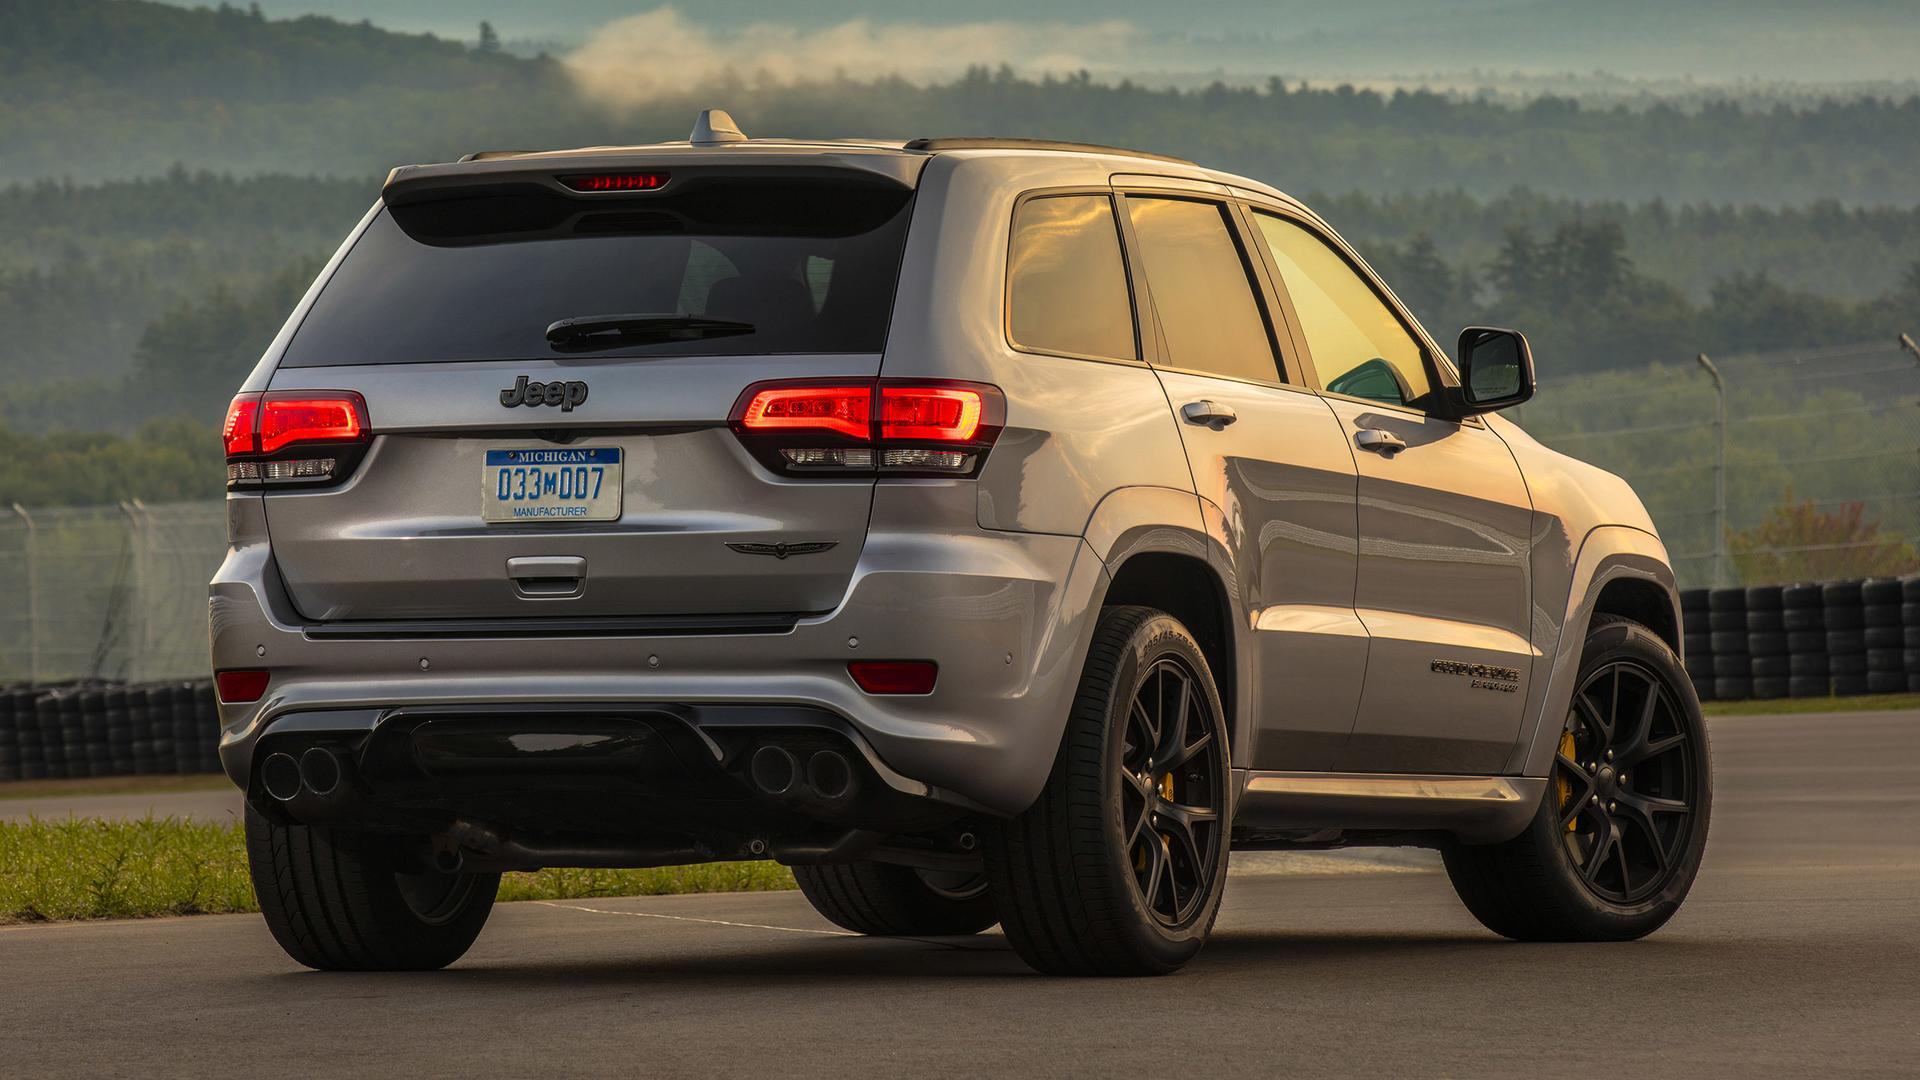 2018 Jeep Grand Cherokee >> Next Generation Jeep Grand Cherokee To Use Alfa Romeo Platform